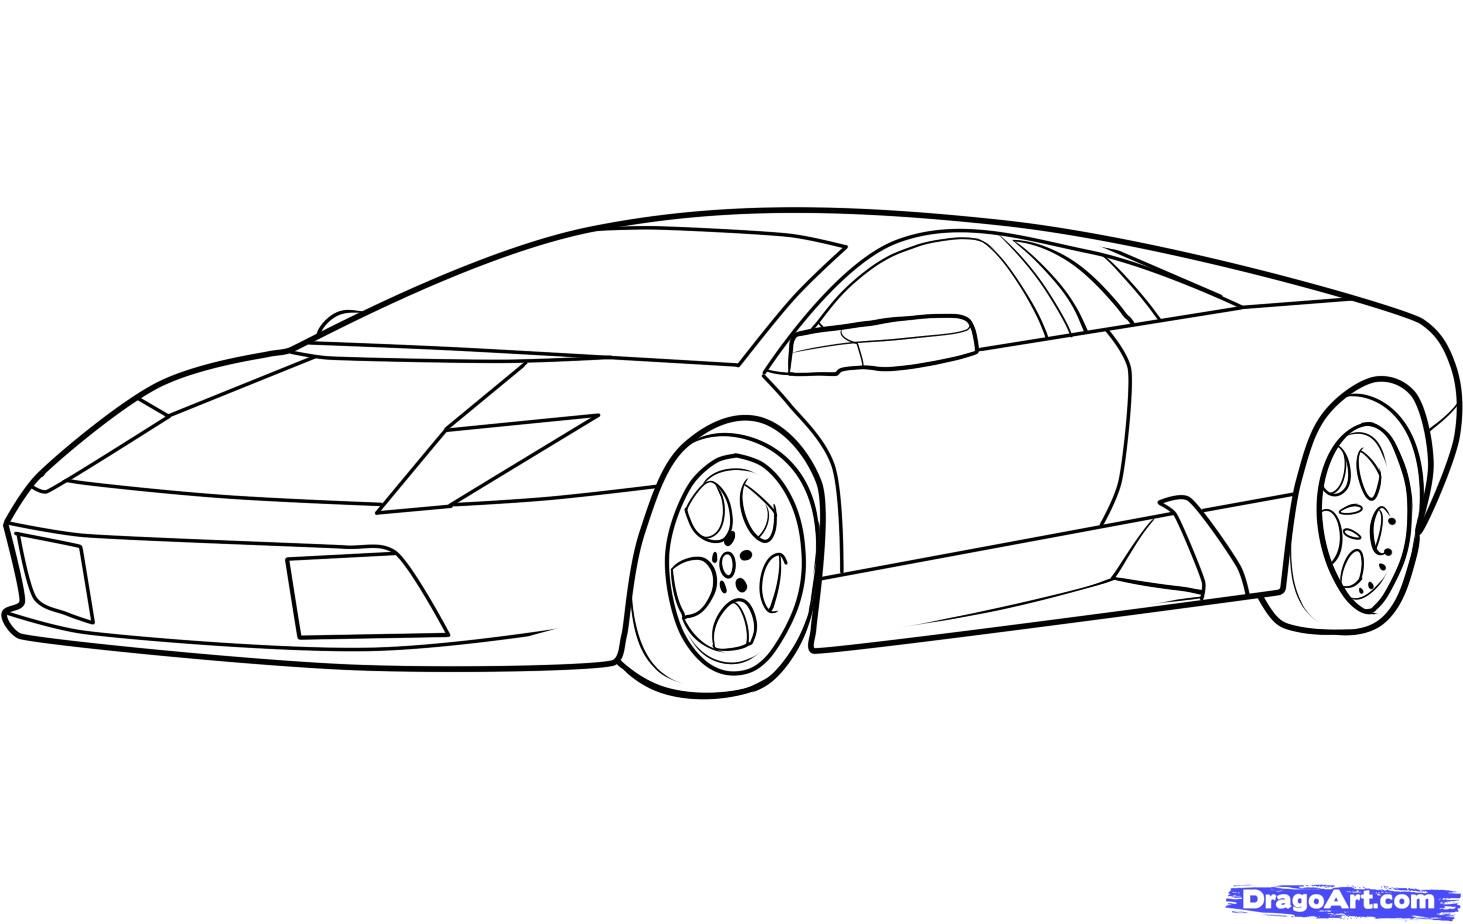 How To Draw Lamborghini Drawings Expensive Sports Cars Cool Car